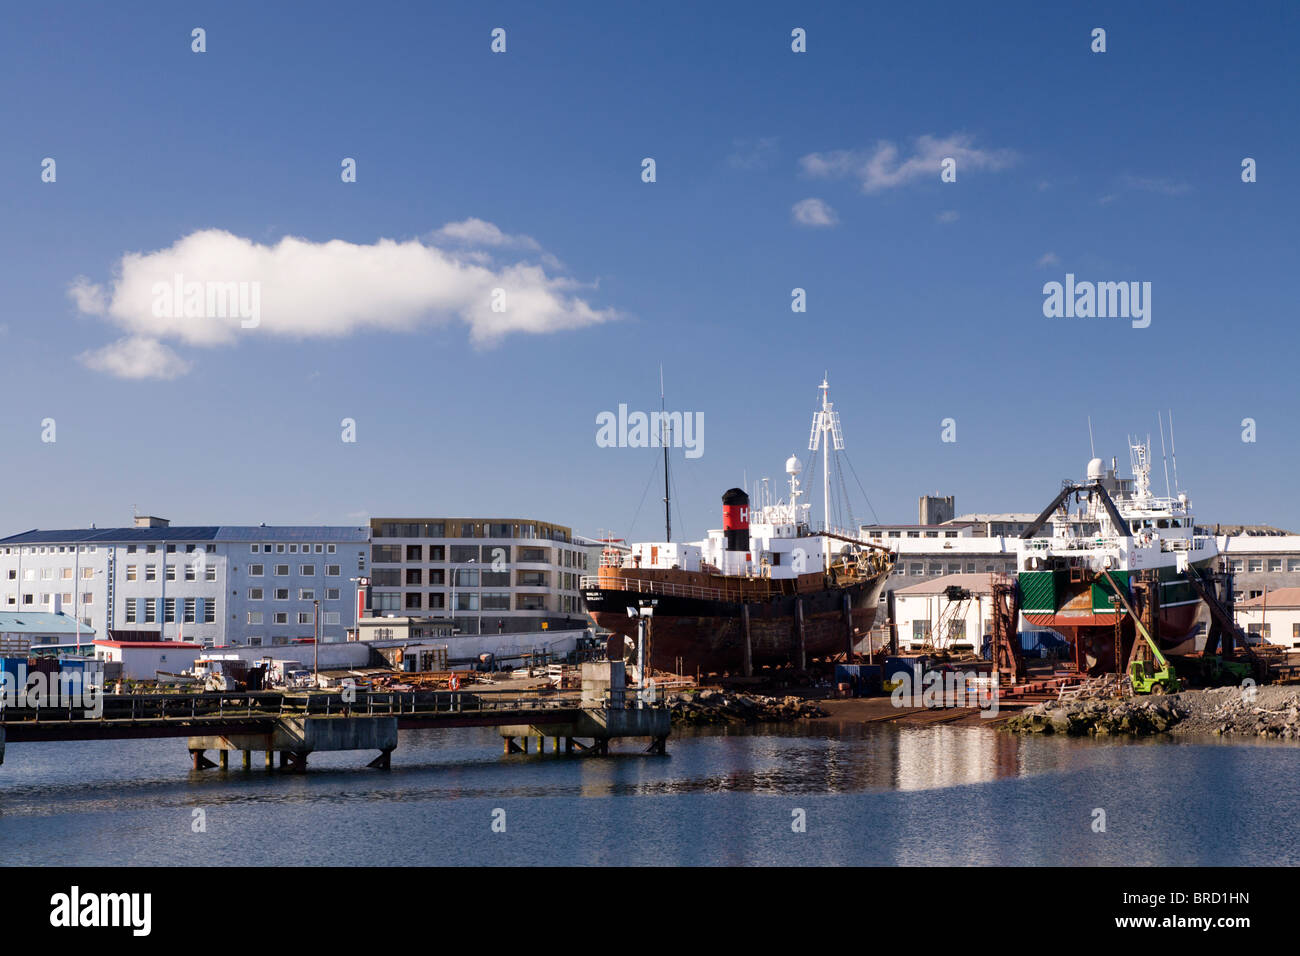 Ships being repaired at the shipyard. Reykjavik Iceland. - Stock Image